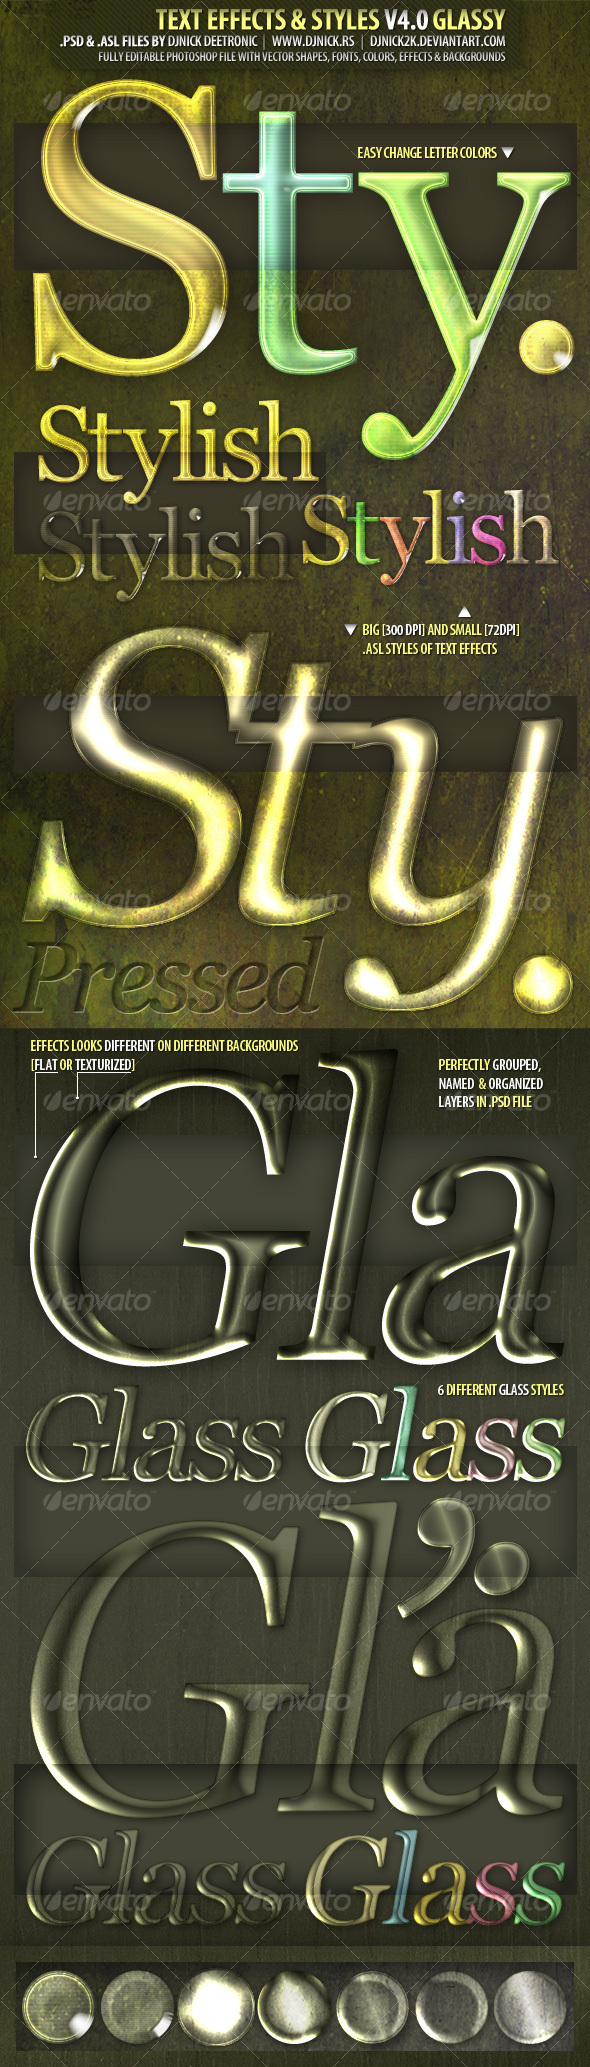 Glassy Text Effects - Editable PSD with ASL file - Text Effects Styles